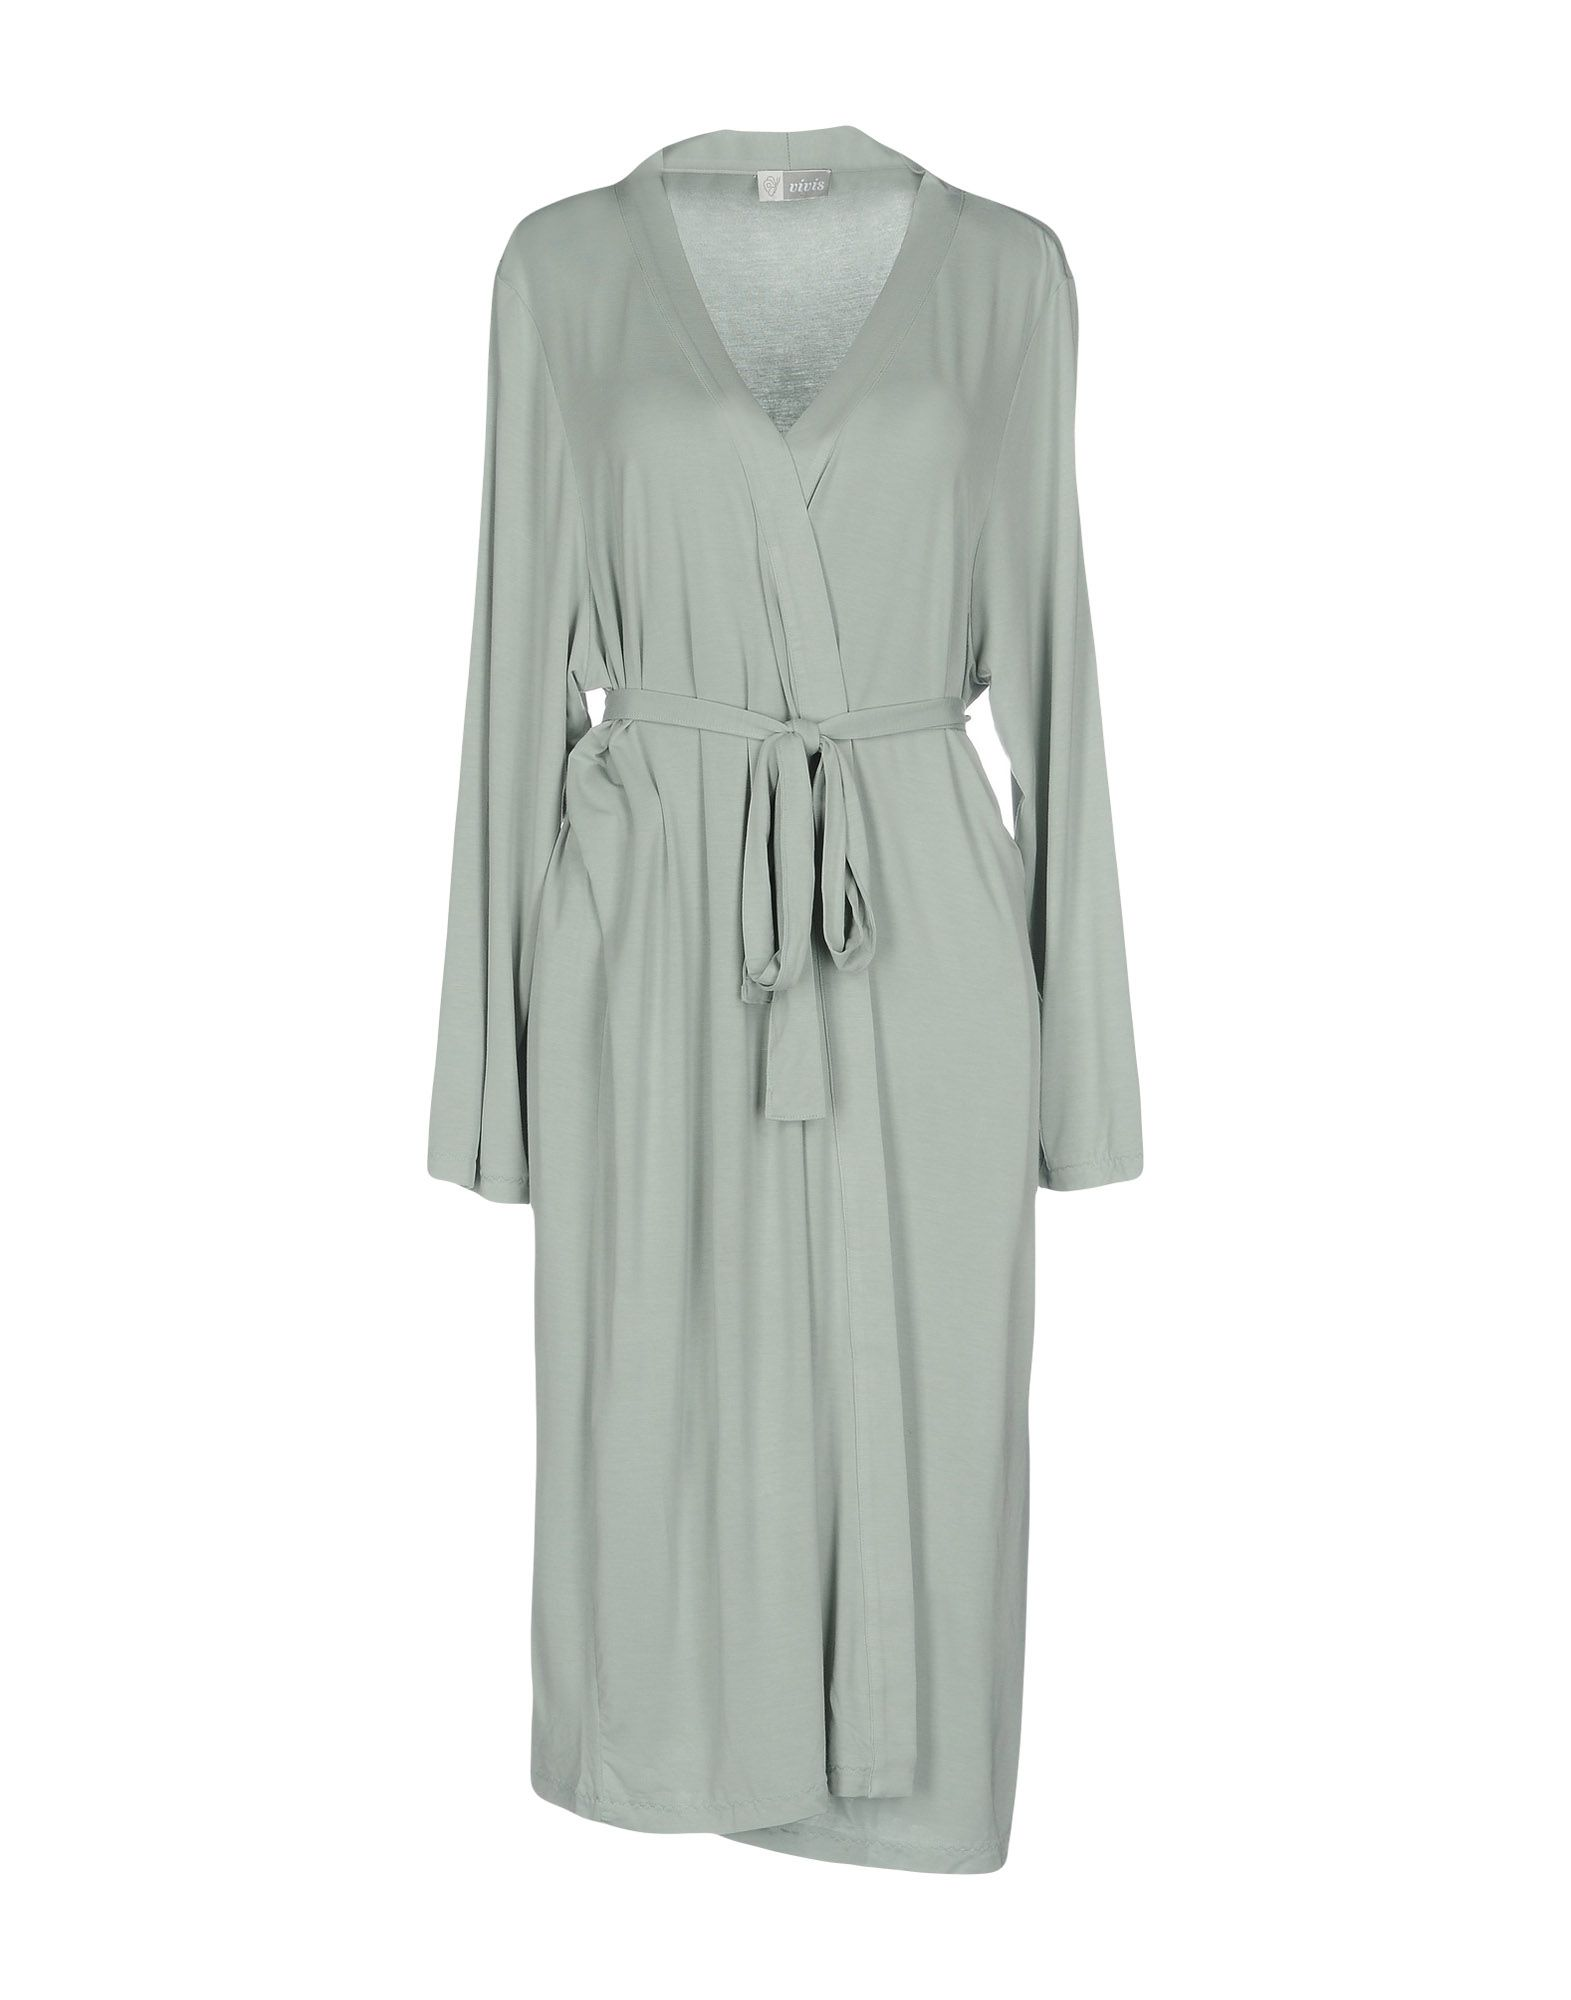 ab5b45eabe Vivis Dressing Gown - Women Vivis Dressing Gowns online on YOOX ...